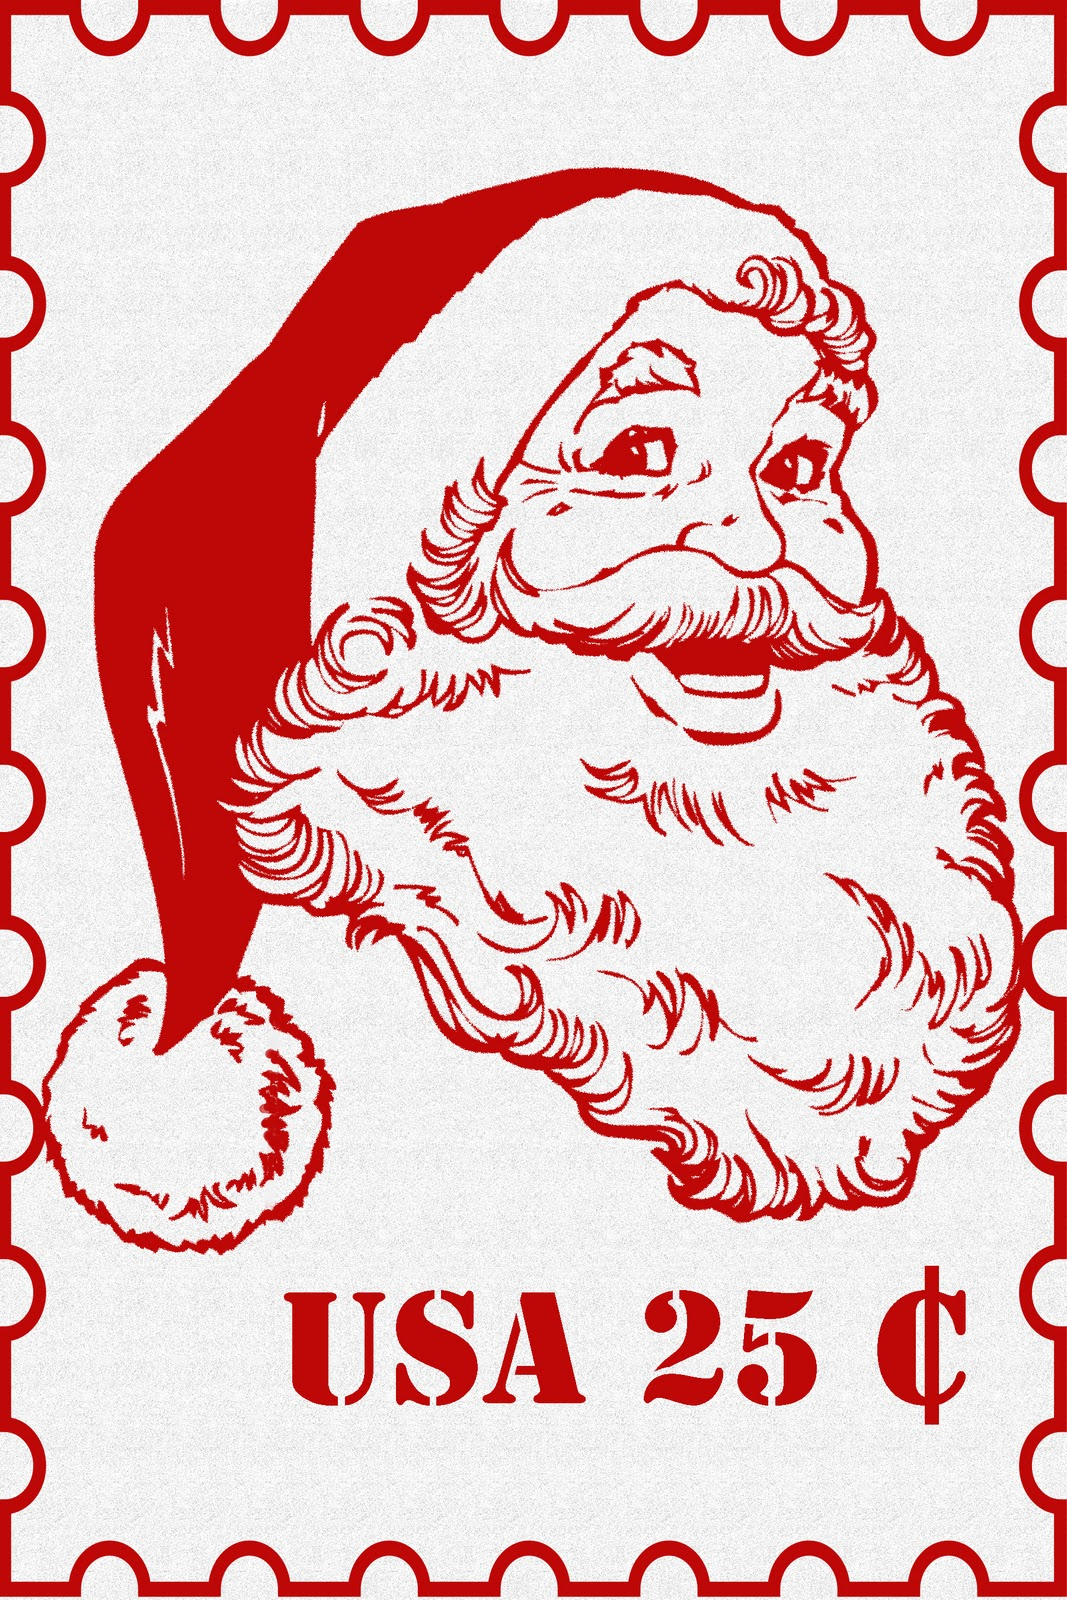 photograph relating to Stamp Printable called Uncomplicated Frugal Residing: Mystery Santa Postage Stamp Printable